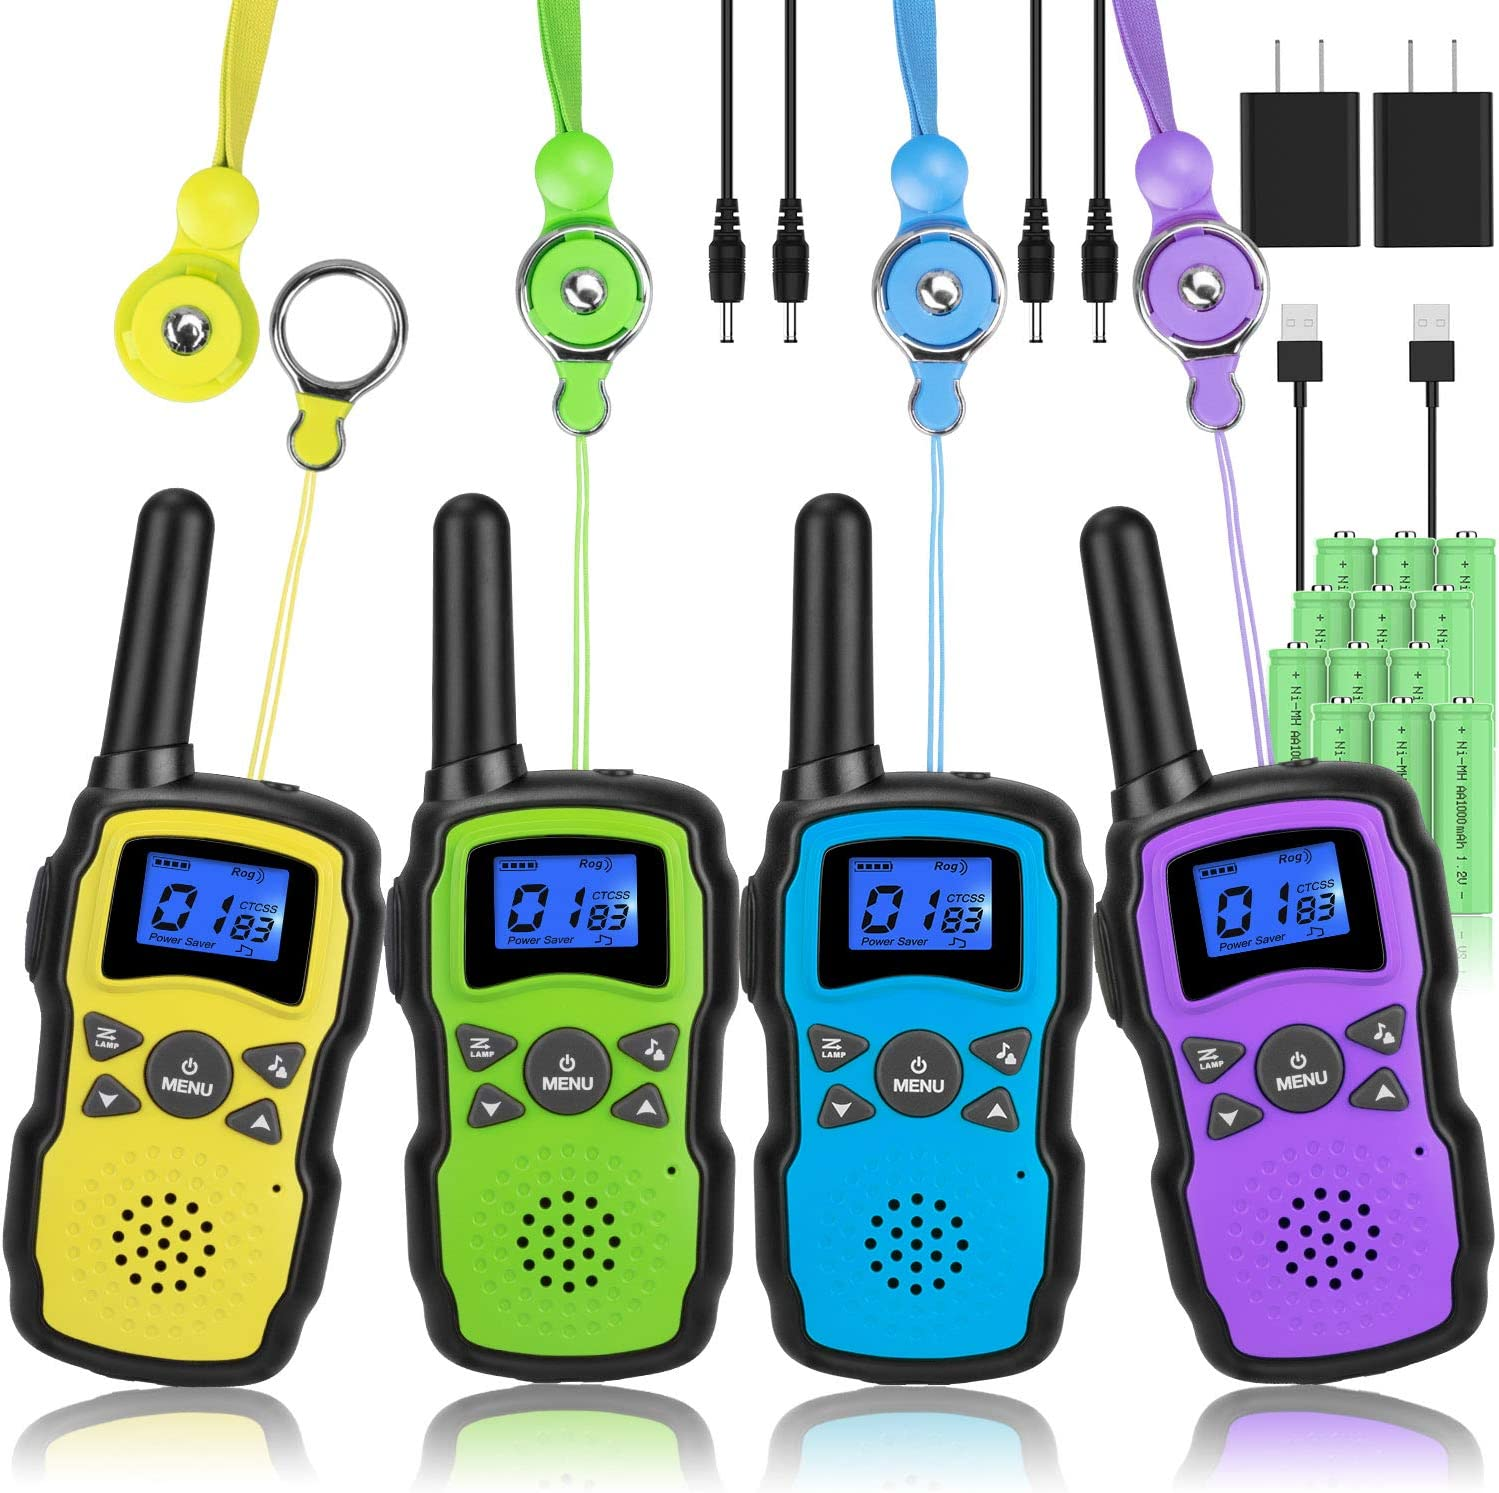 Wishouse Walkie Talkies for Kids Adults Rechargeable Long Range 4 Pack with 2 USB Chargers,Family Walky Talky Two Way Radio,Outdoor Camping Games Indoor Toys Birthday Xmas Gift for Boys Girls Children